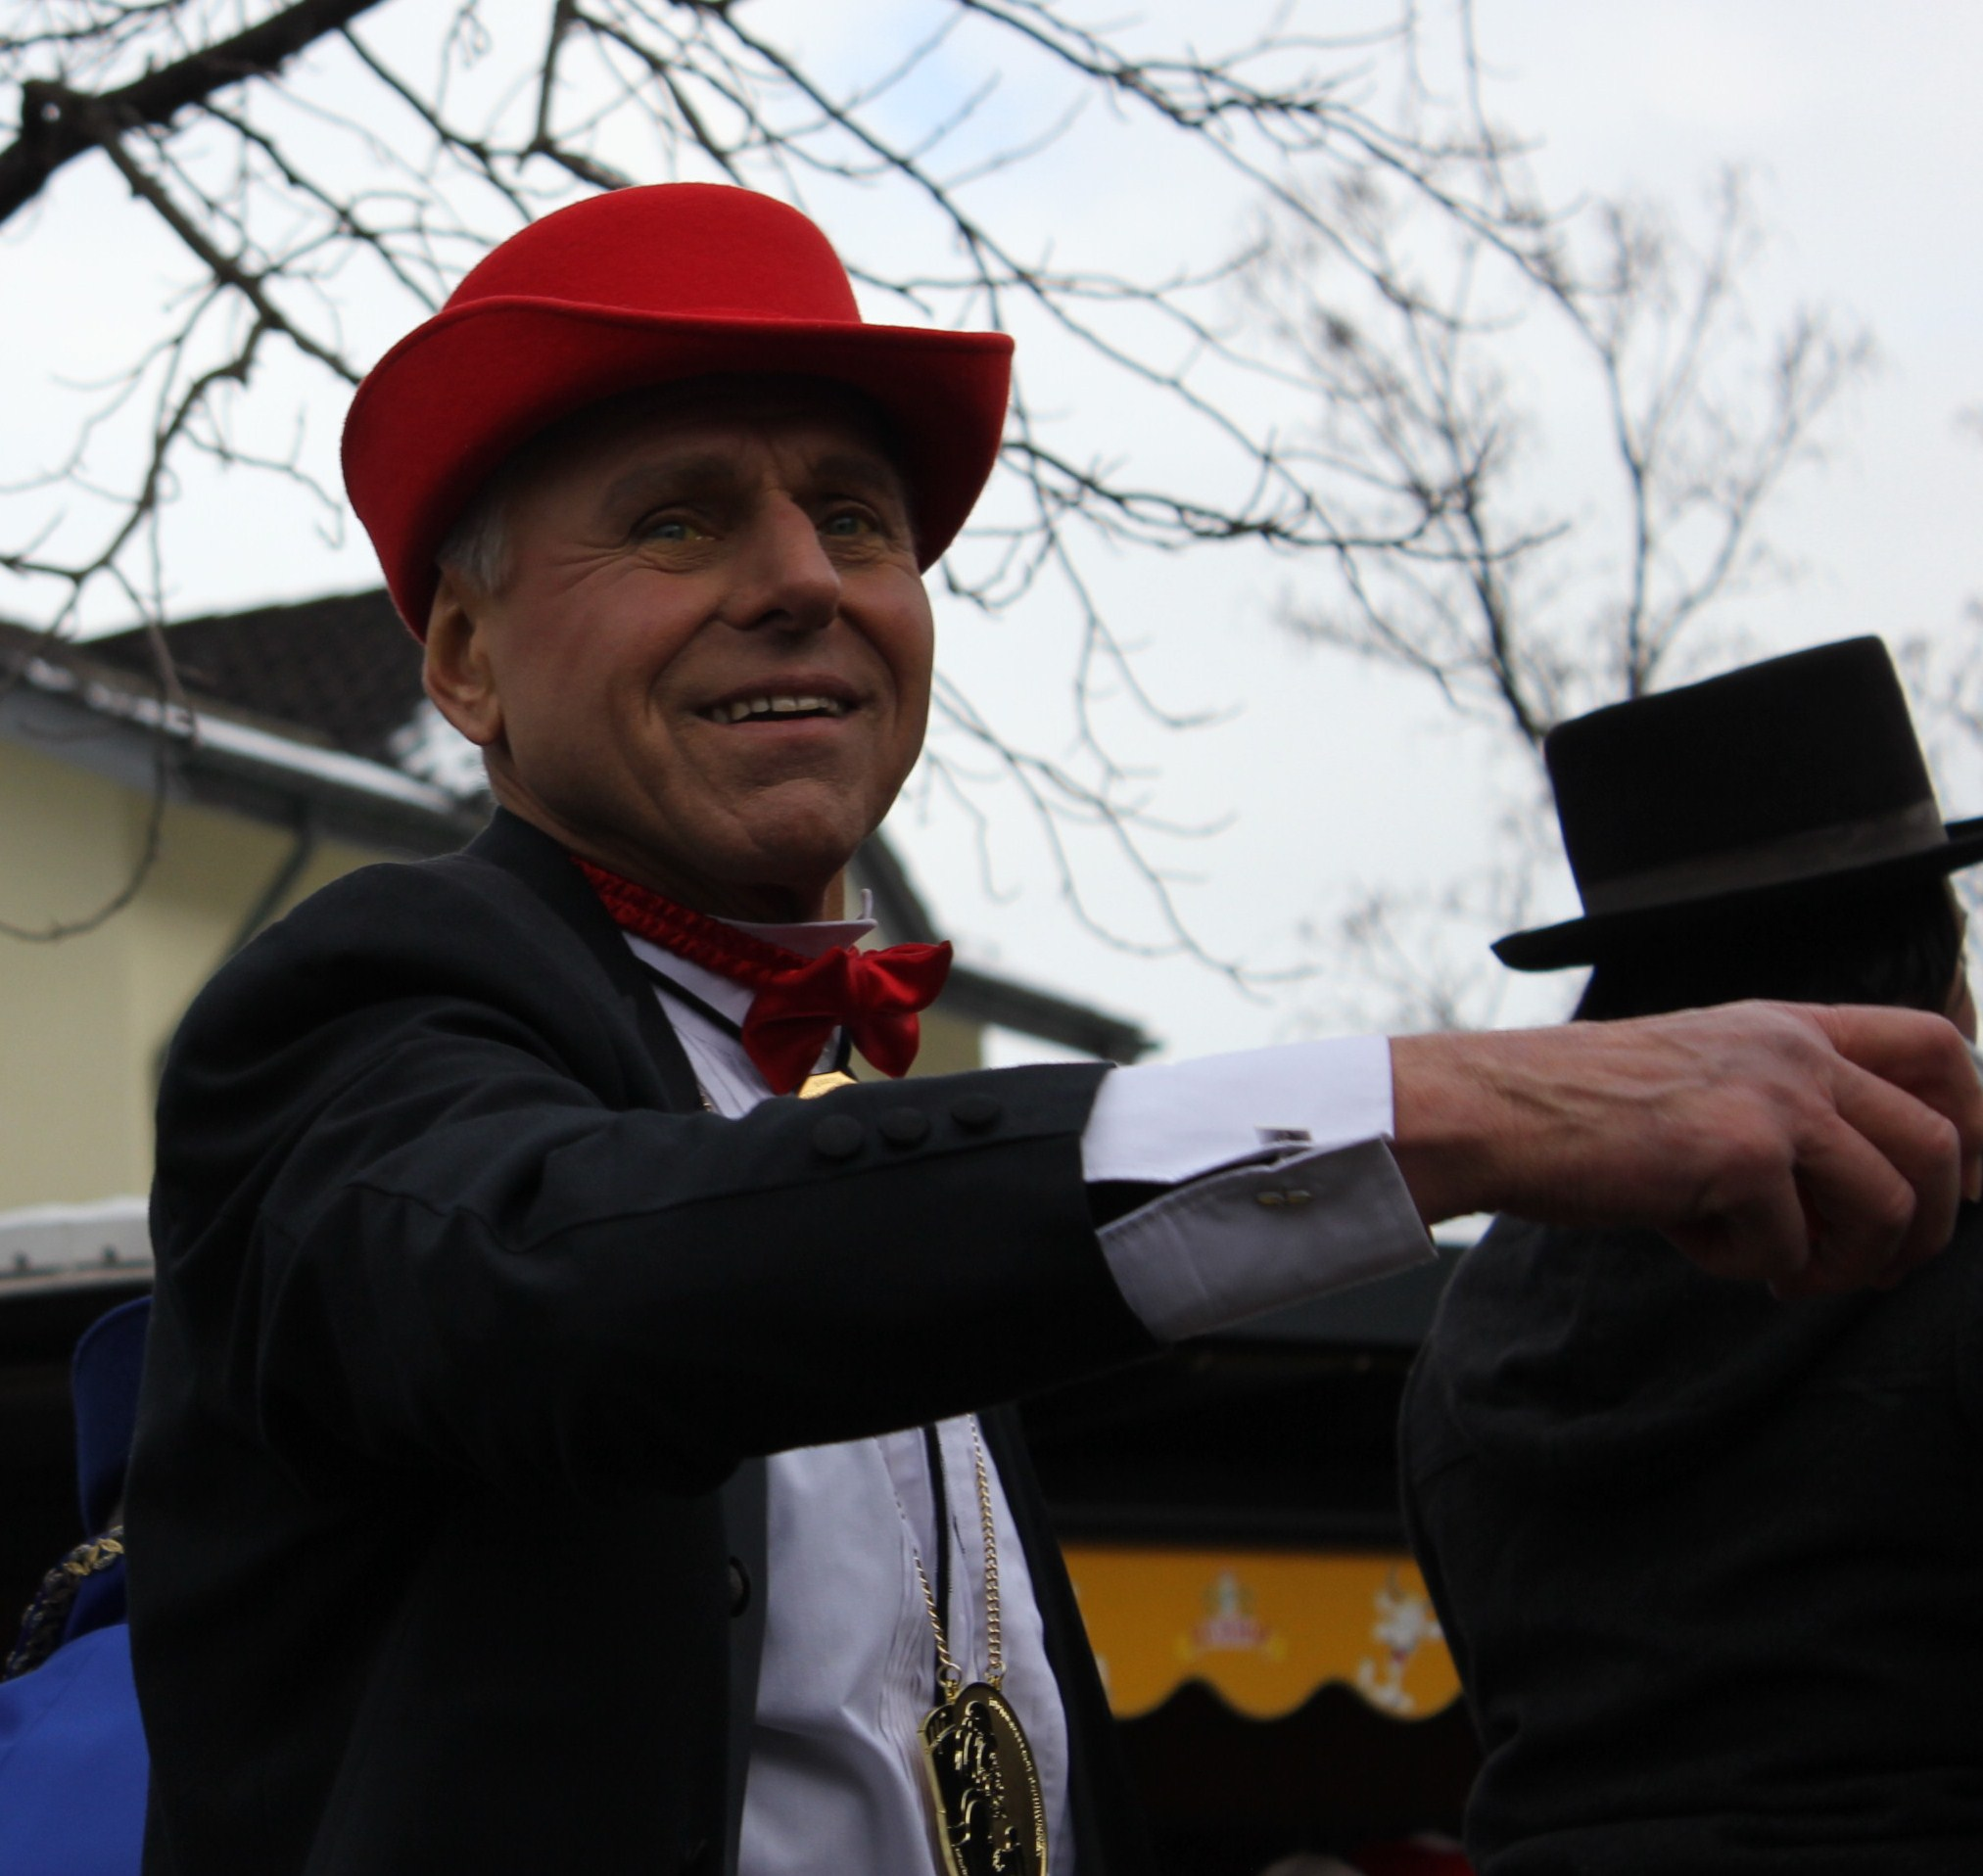 https://upload.wikimedia.org/wikipedia/commons/archive/d/d8/20120312223103%21Timo_Konietzka_Brunner_Fasnacht_2012.JPG